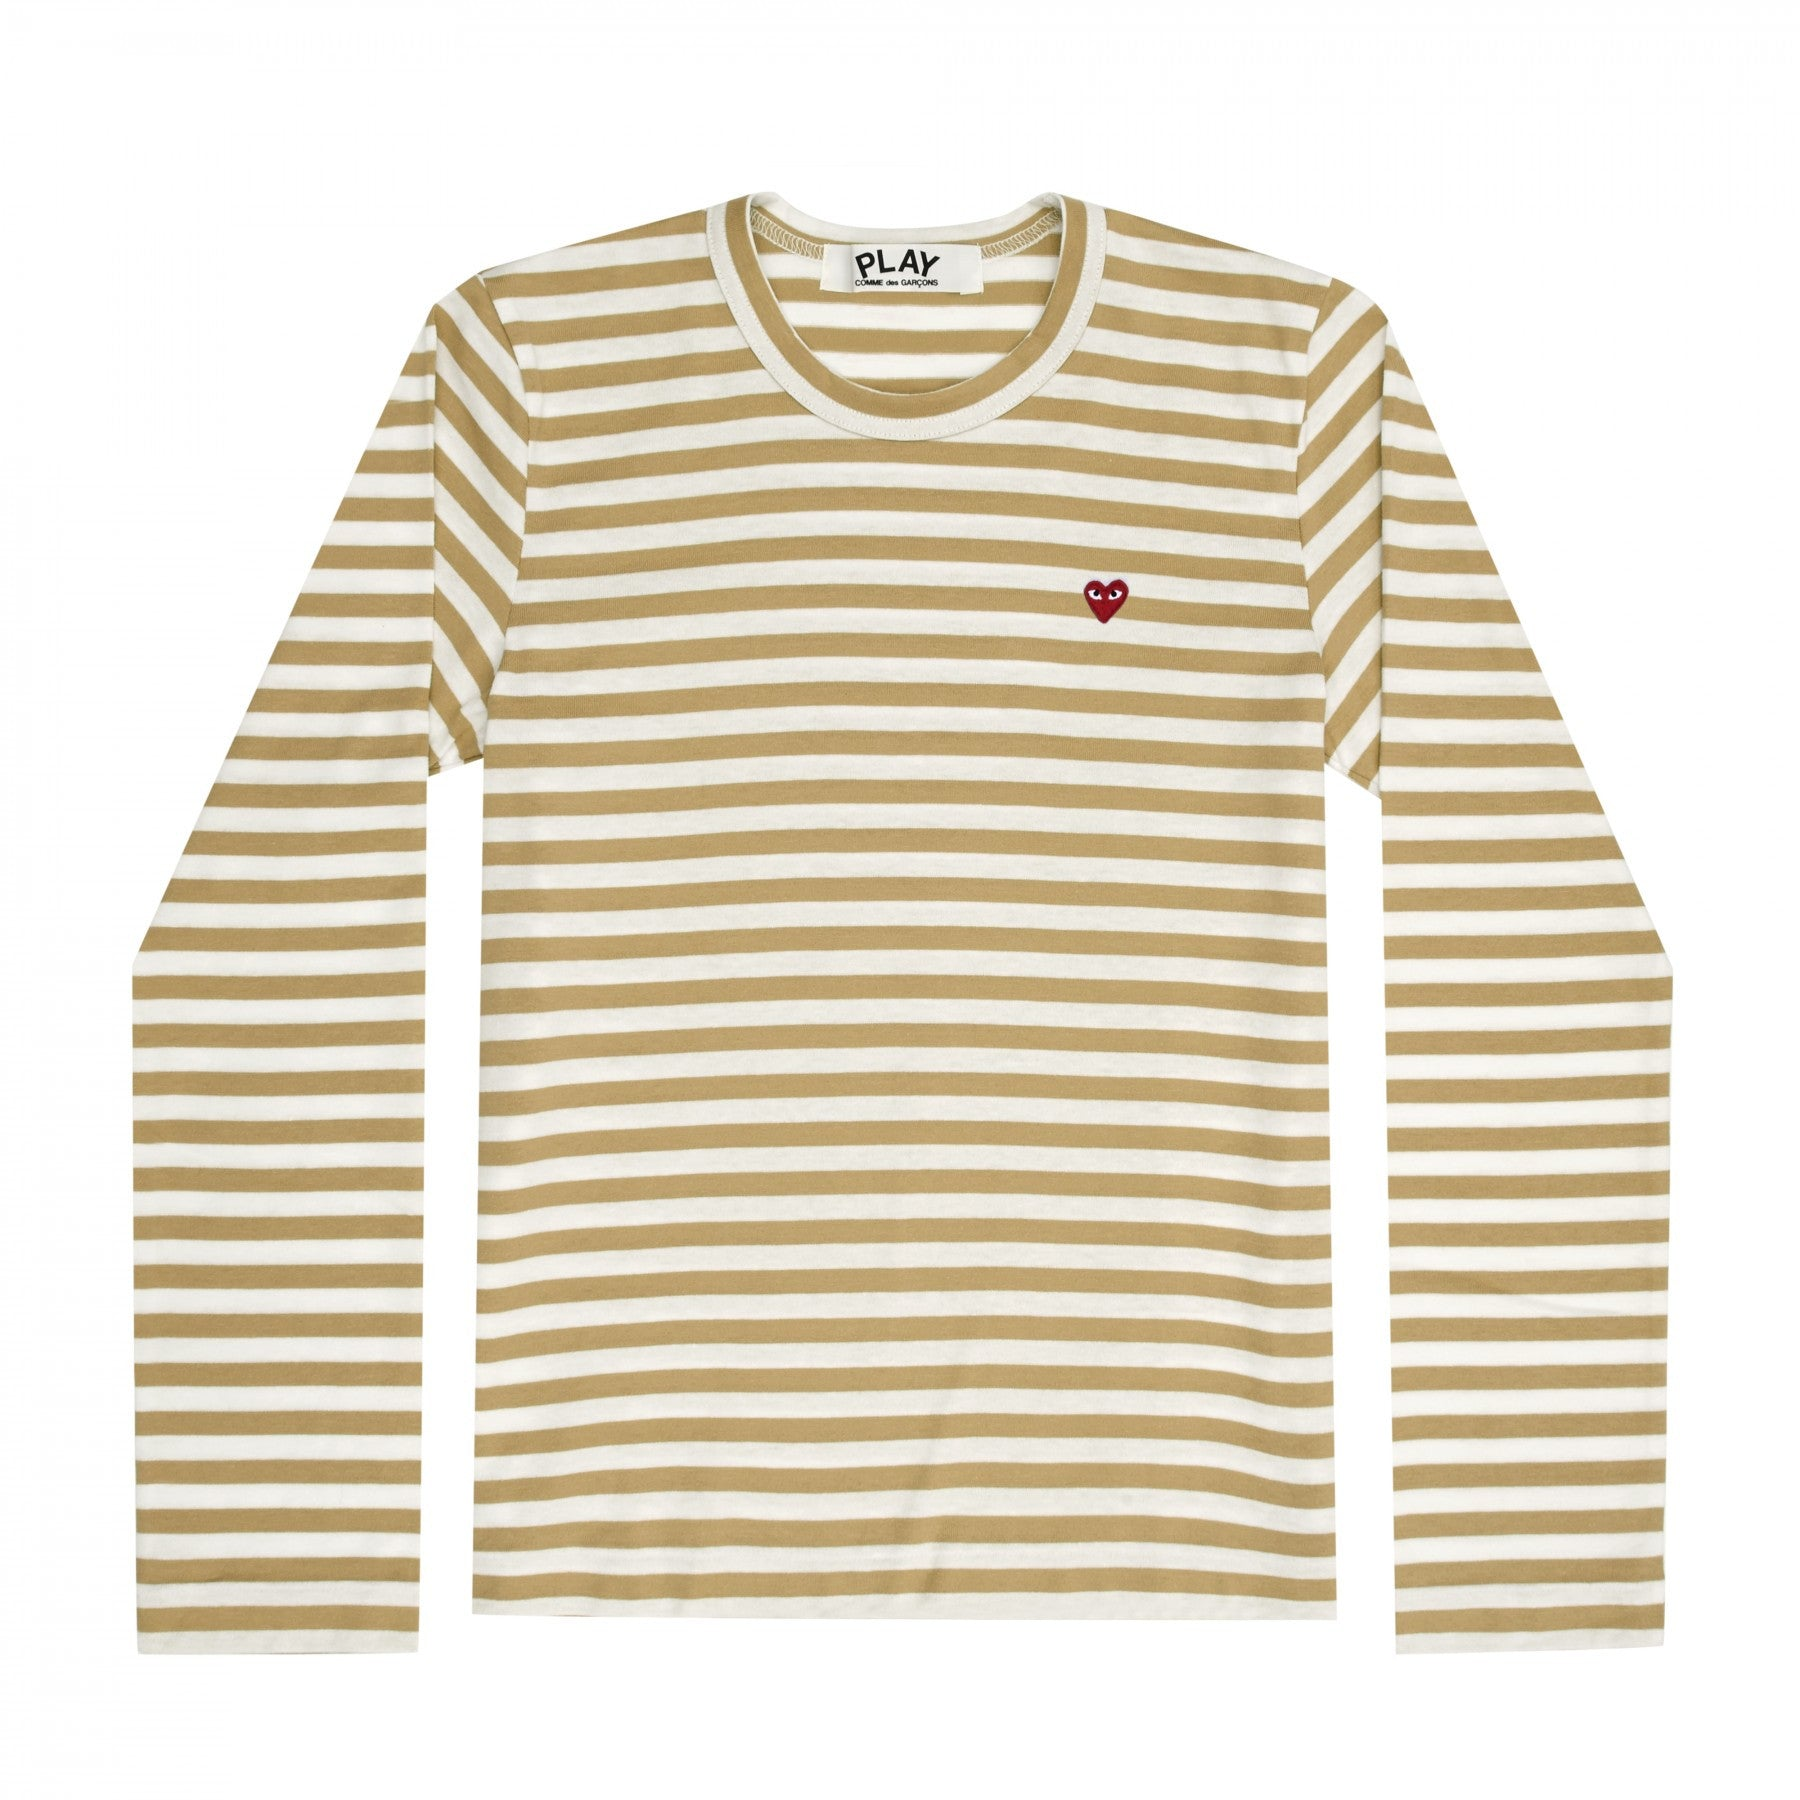 Olive & White Striped T-shirt